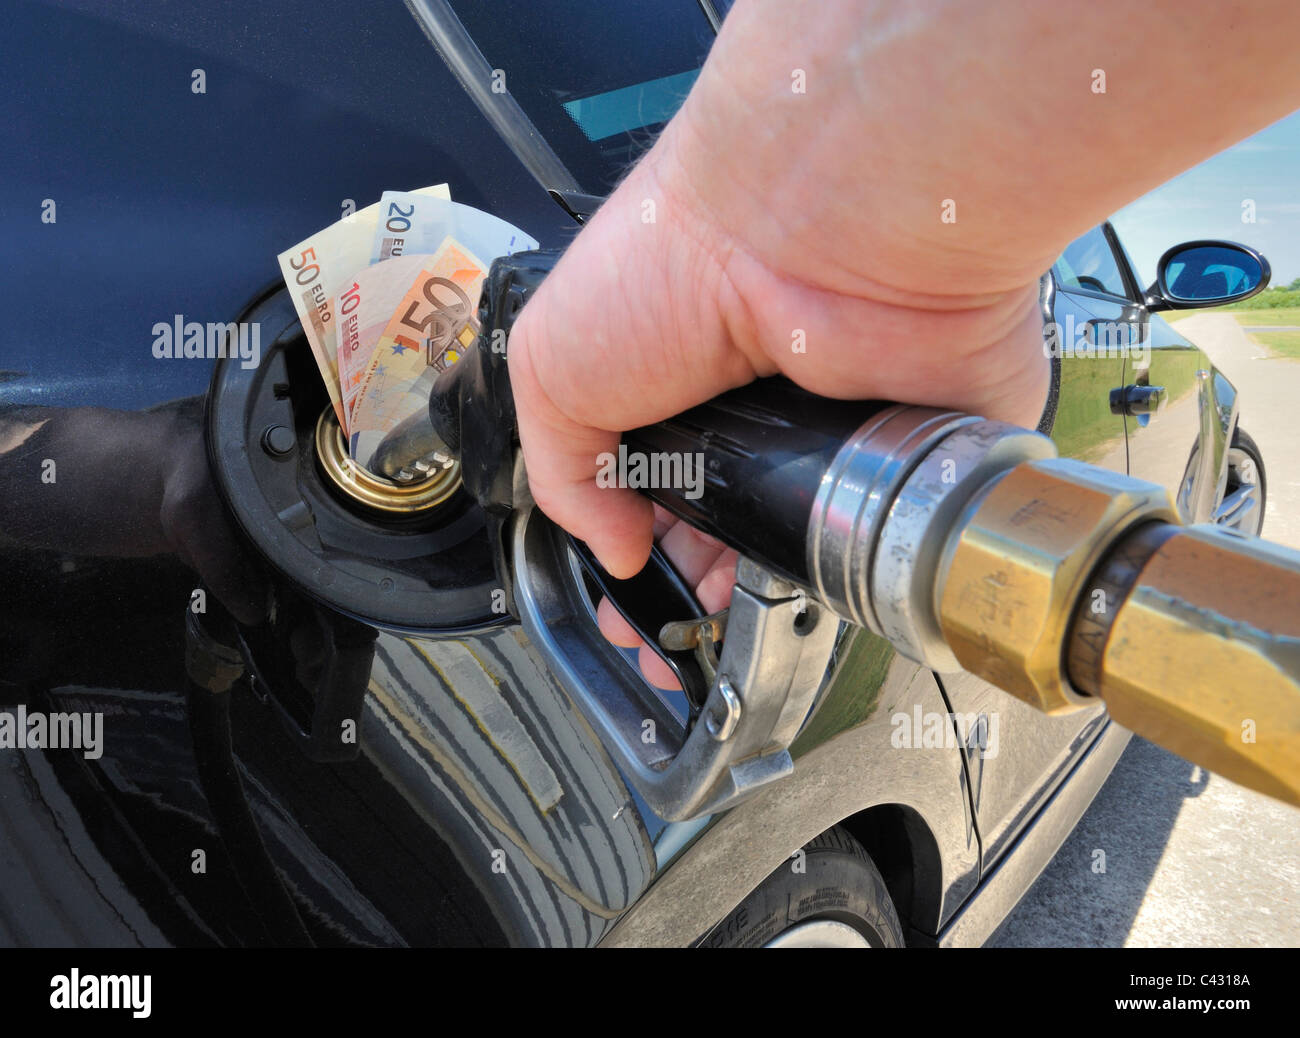 Banknotes in the Fuel Tank of a Car - Stock Image